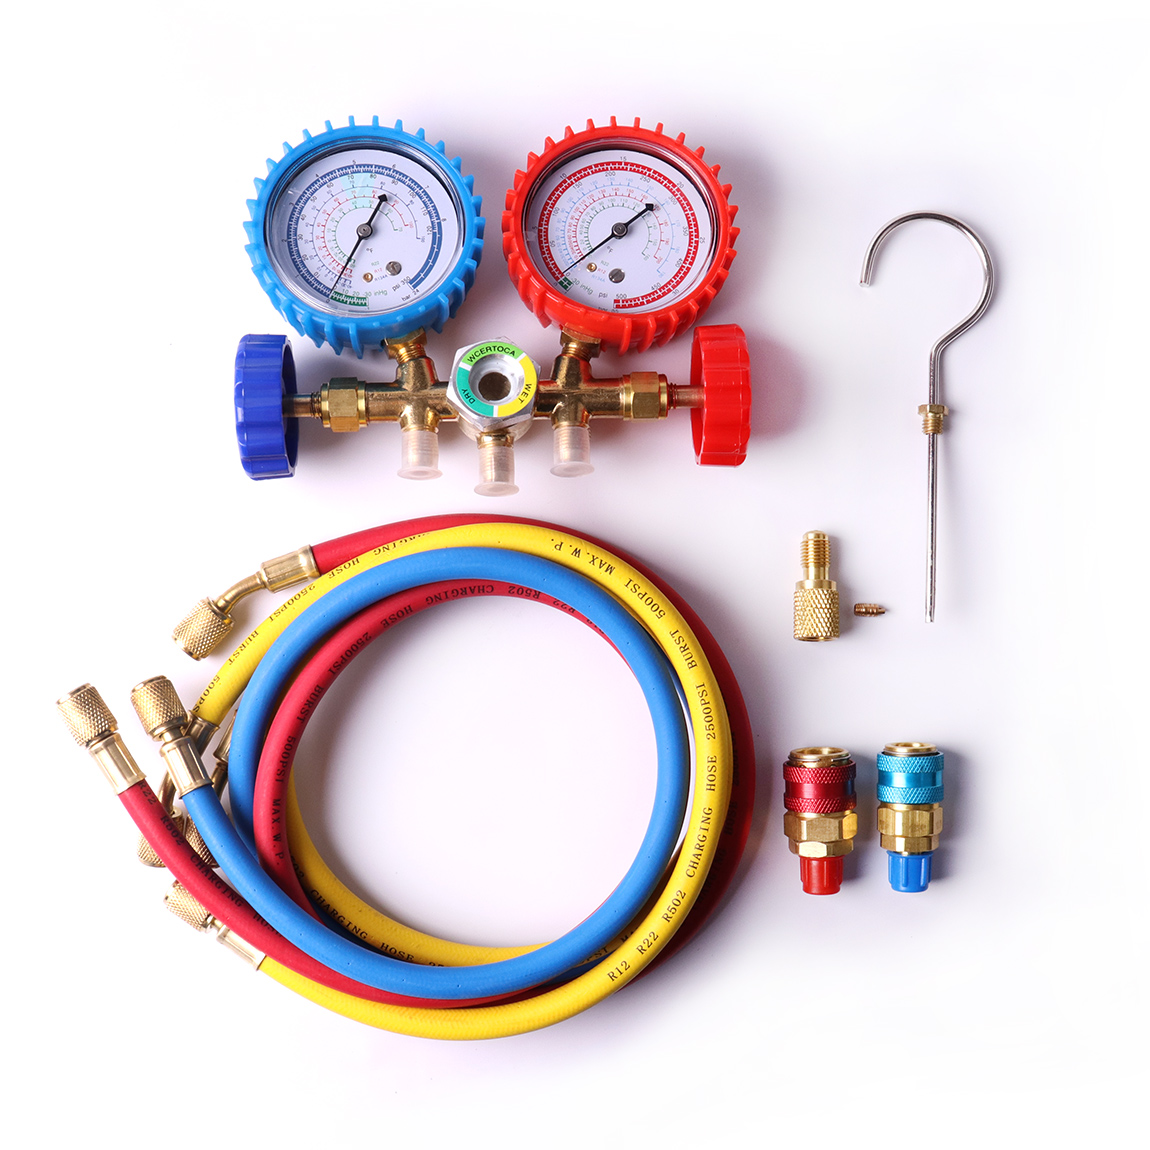 New Air Conditioning Red Blue H-L R134 Quick Couplers R12 R22 R502 and R134a A/C Manifold Brass Gauge Set with 3 Charging Hoses половник splash 1104650